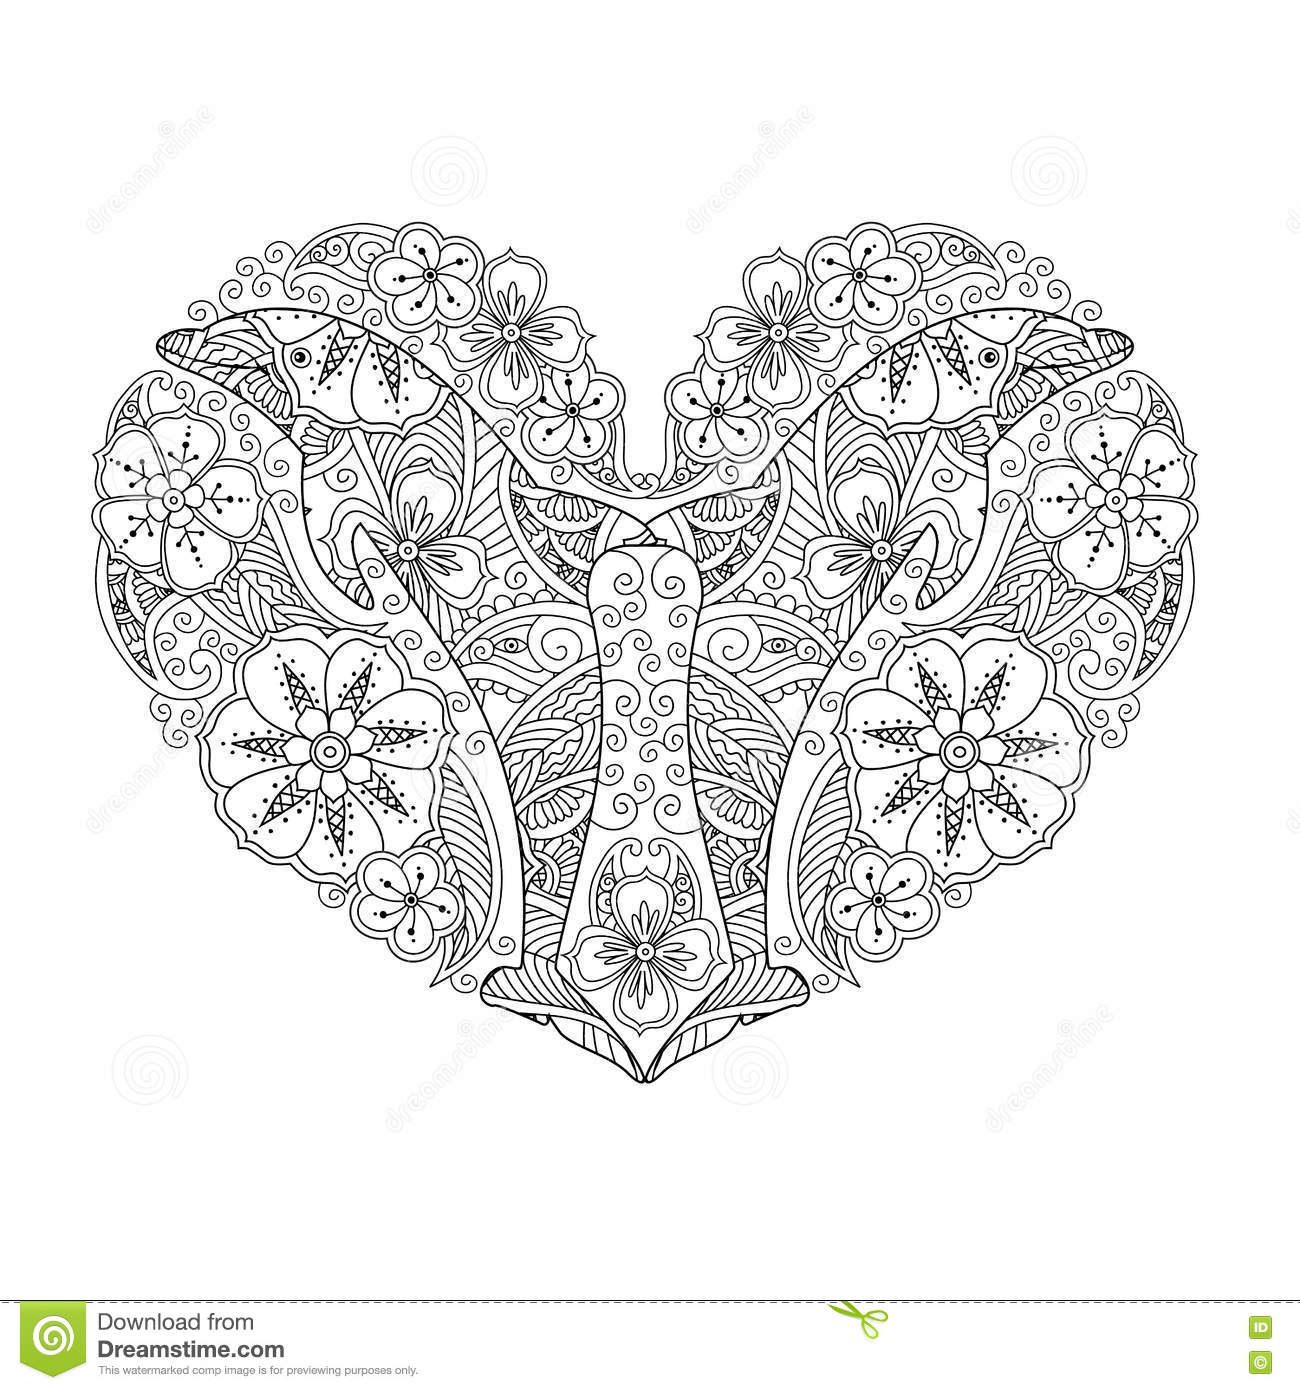 Download Coloring Page With Dolphin In Heart Shape Isolated On White Background Stock Vector